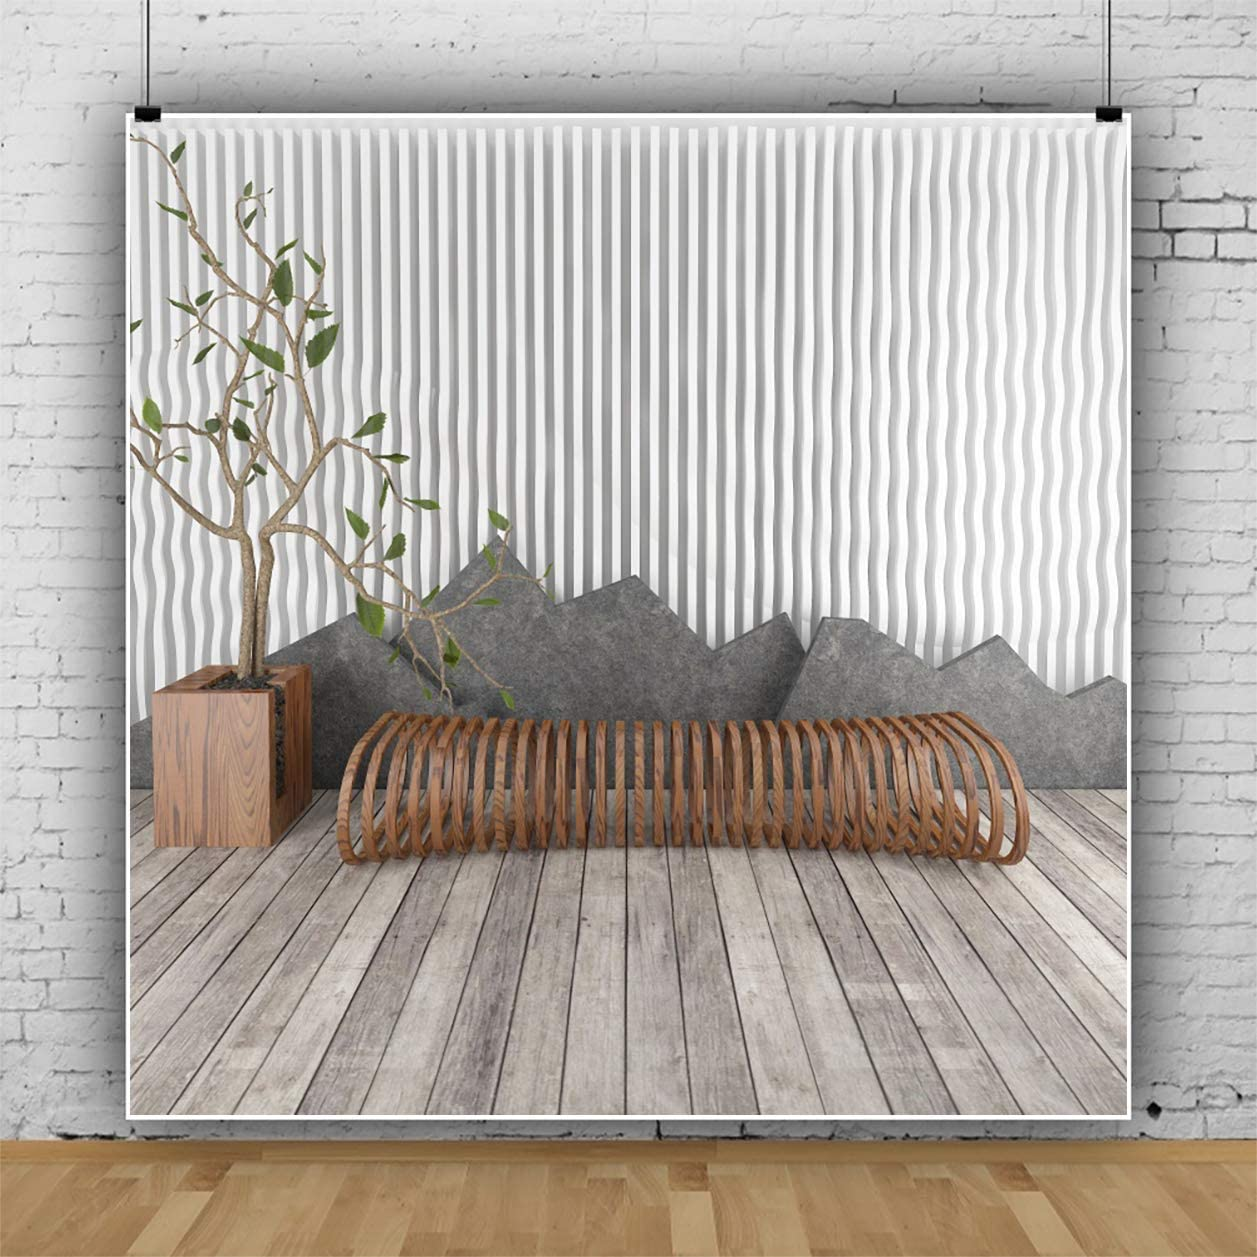 YEELE Living Room Interior Photography Backdrop 9x9ft Stylish and Simple Design Wooden Sofa Background Modern House Indoor Home Kids Adult Portrait Photo Studio Props Wallpaper